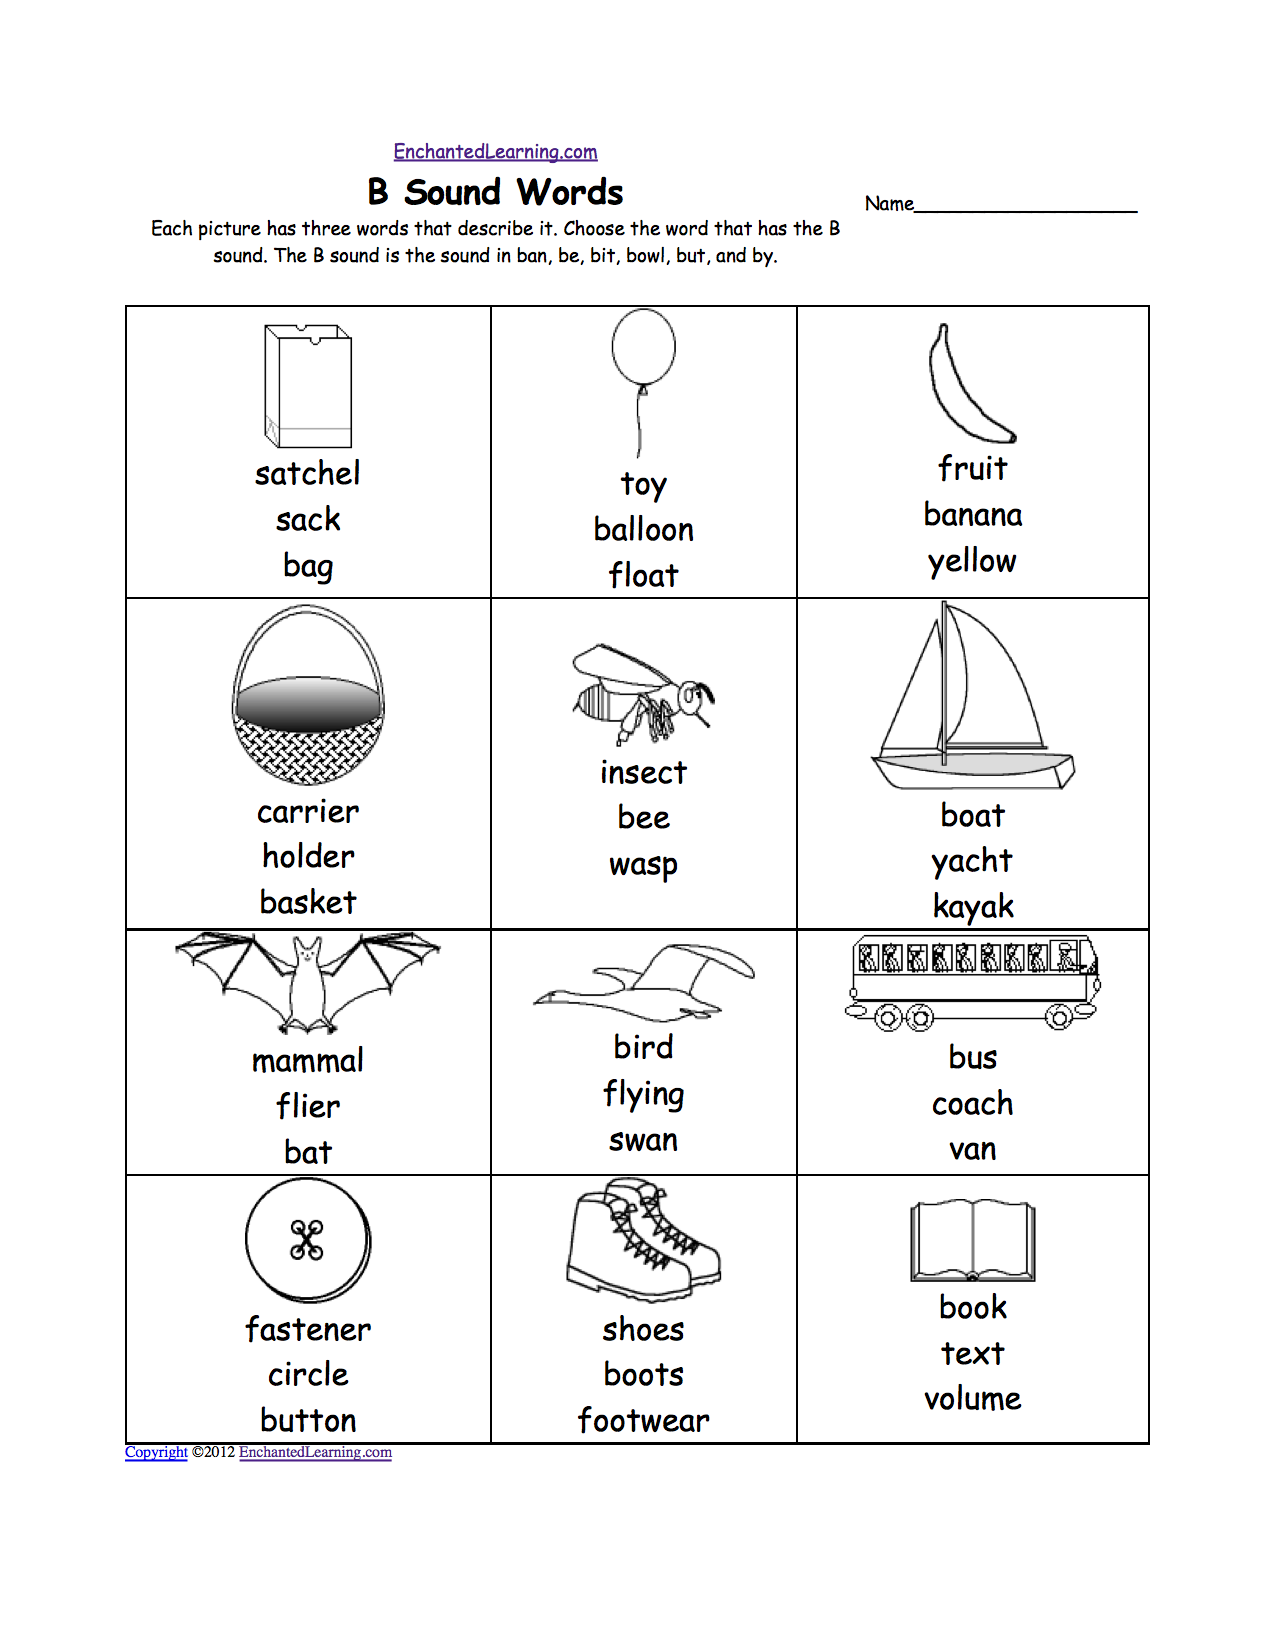 Weirdmailus  Stunning Phonics Worksheets Multiple Choice Worksheets To Print  With Great Quotbquot Sound Phonics Worksheet Multiple Choice Each Picture Has Three Words That Describe It Choose The Word That Has A Quotbquot Sound The Quotbquot Sound Is The Sound  With Charming Us Symbols Worksheets Also Math Color Worksheets In Addition Ap Statistics Worksheets And Worksheets For Th Grade Math As Well As English Worksheets For Middle School Additionally Bible Worksheets For Youth From Enchantedlearningcom With Weirdmailus  Great Phonics Worksheets Multiple Choice Worksheets To Print  With Charming Quotbquot Sound Phonics Worksheet Multiple Choice Each Picture Has Three Words That Describe It Choose The Word That Has A Quotbquot Sound The Quotbquot Sound Is The Sound  And Stunning Us Symbols Worksheets Also Math Color Worksheets In Addition Ap Statistics Worksheets From Enchantedlearningcom